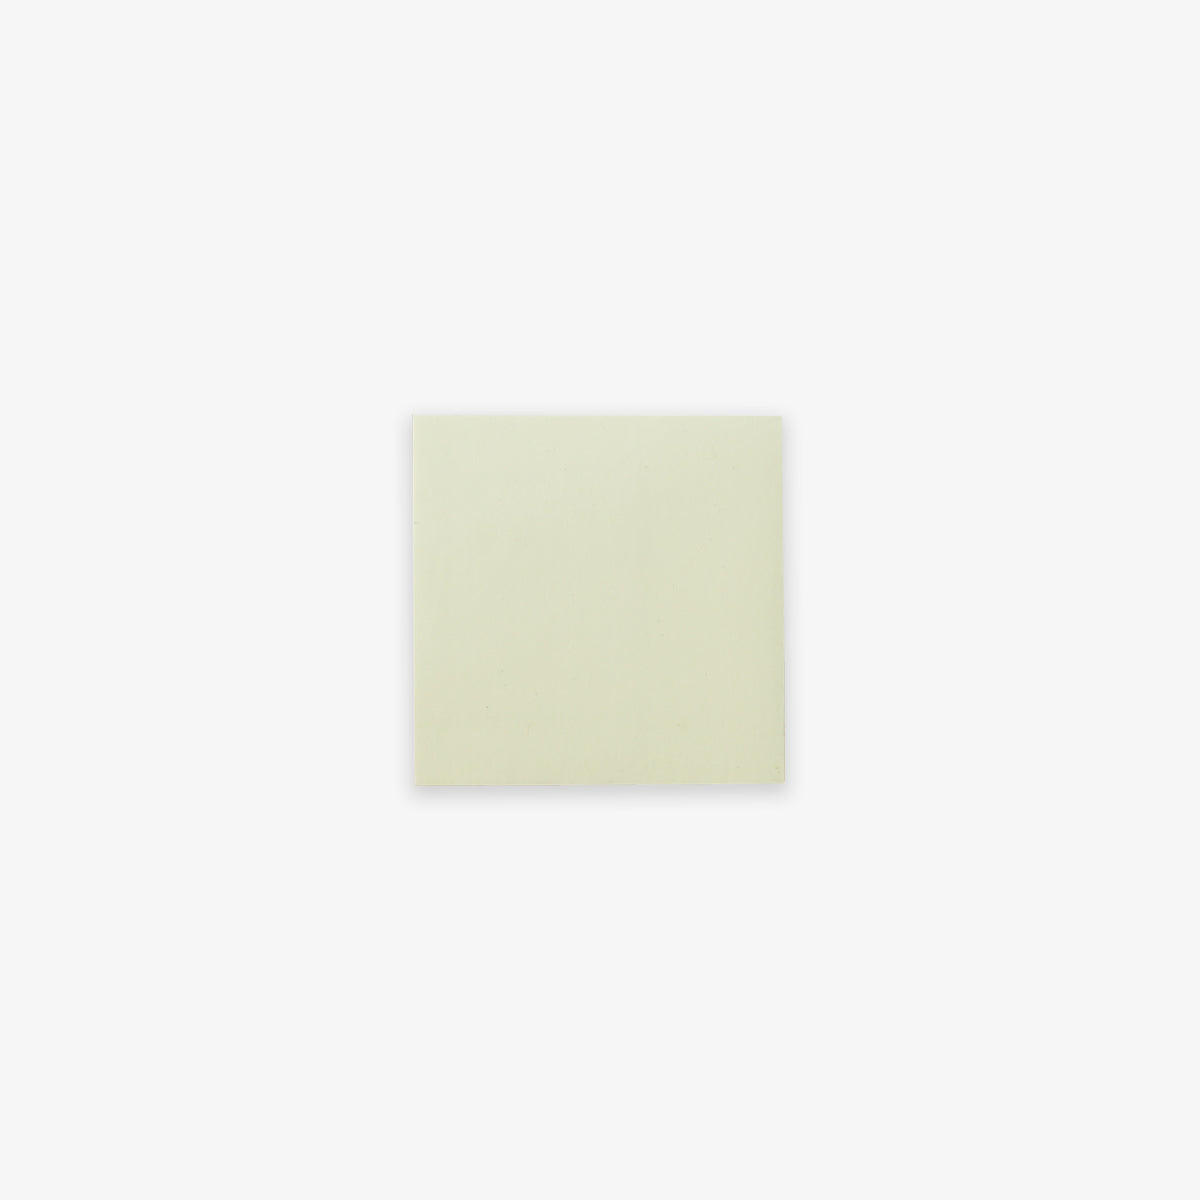 STICKY NOTES // LIGHT YELLOW